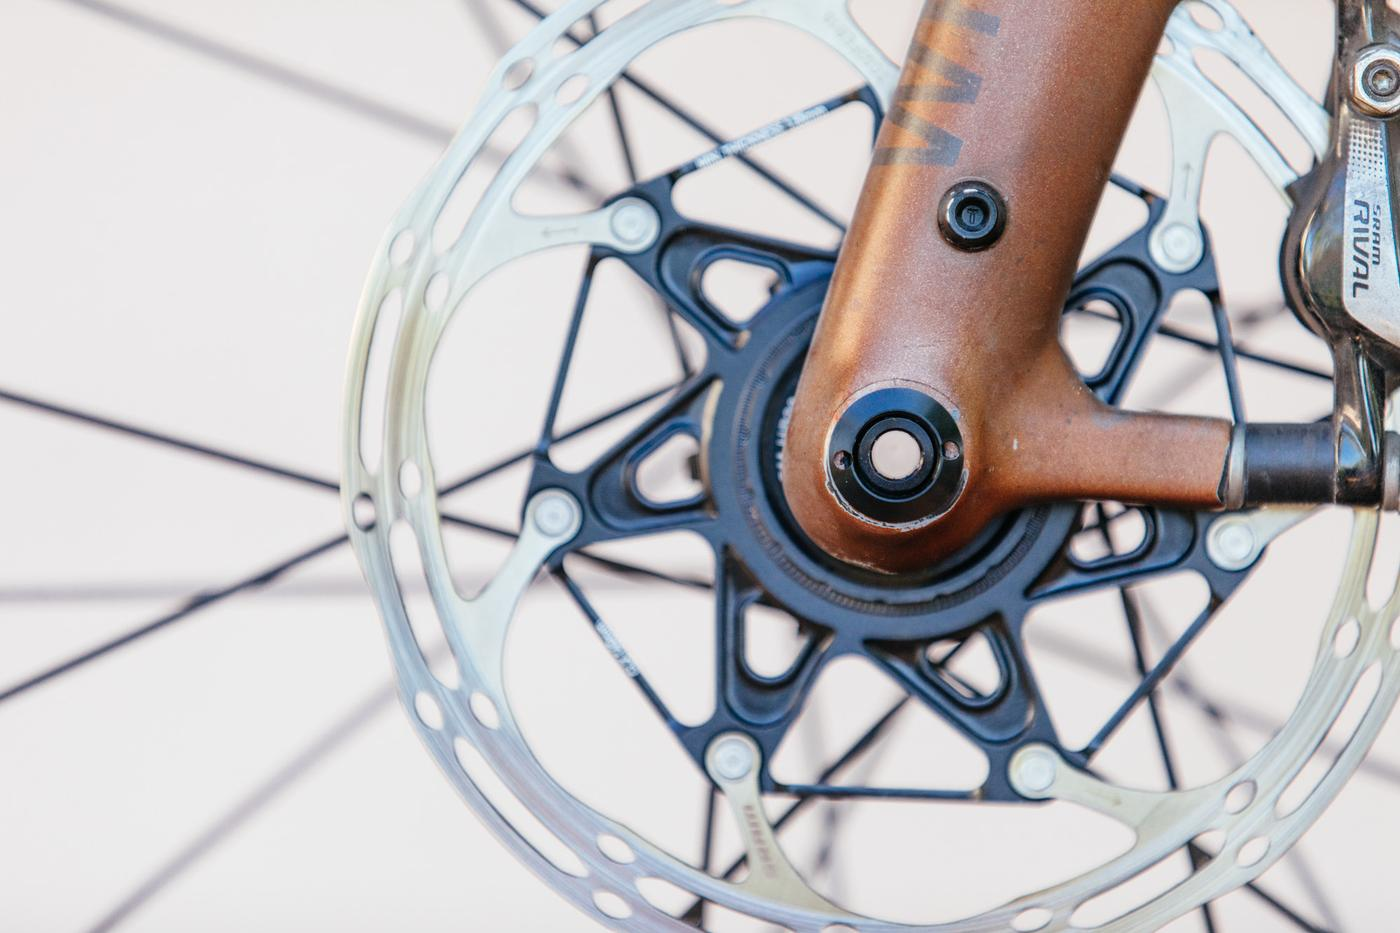 Convert Your 15mm TA Gravel Fork into 12mm with JJP&E's Conversion Kits